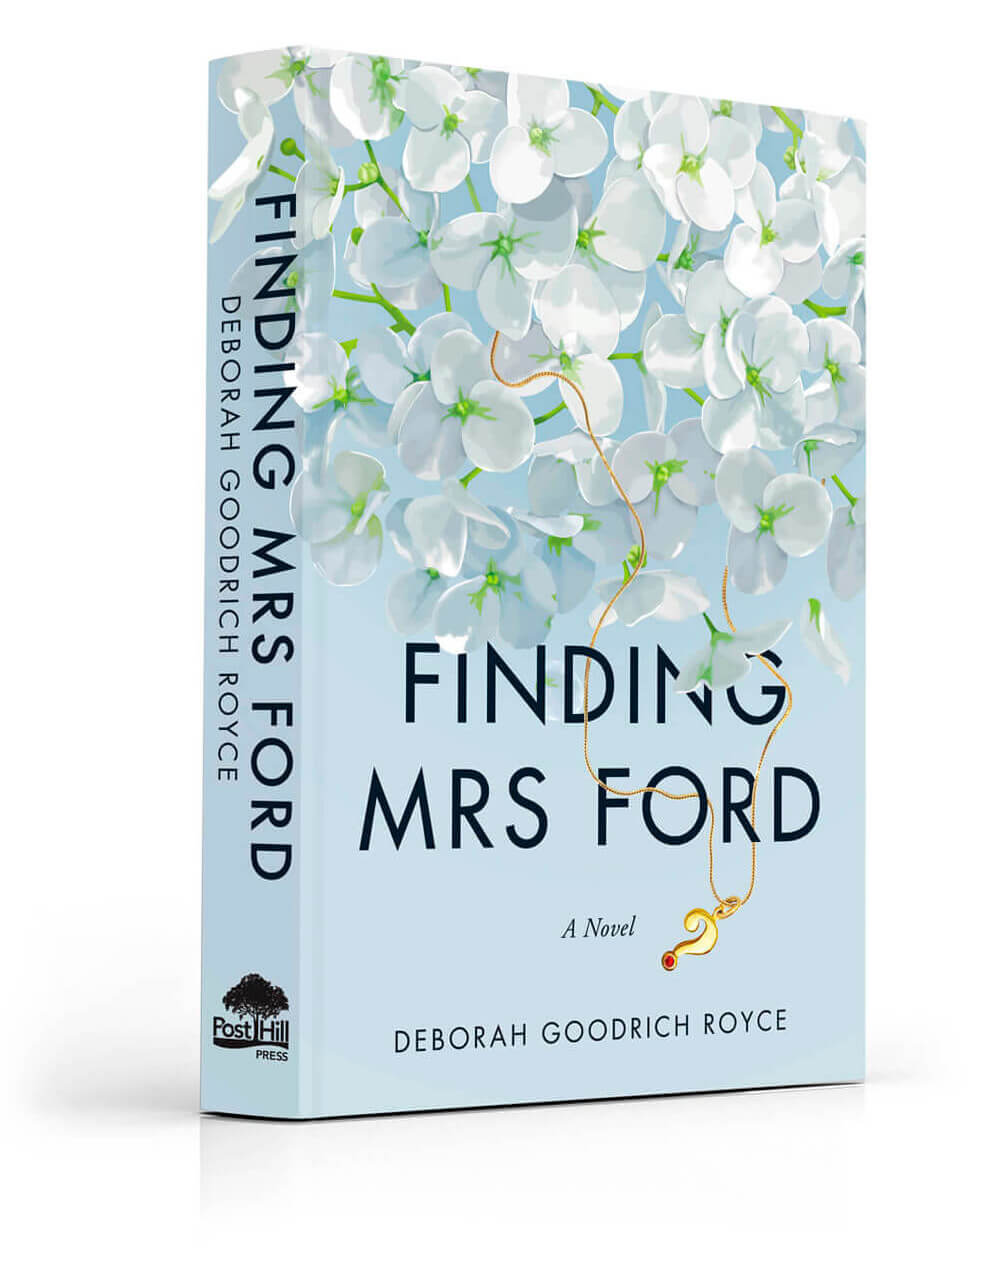 Finding Mr. Ford by Deborah Goodrich Royce